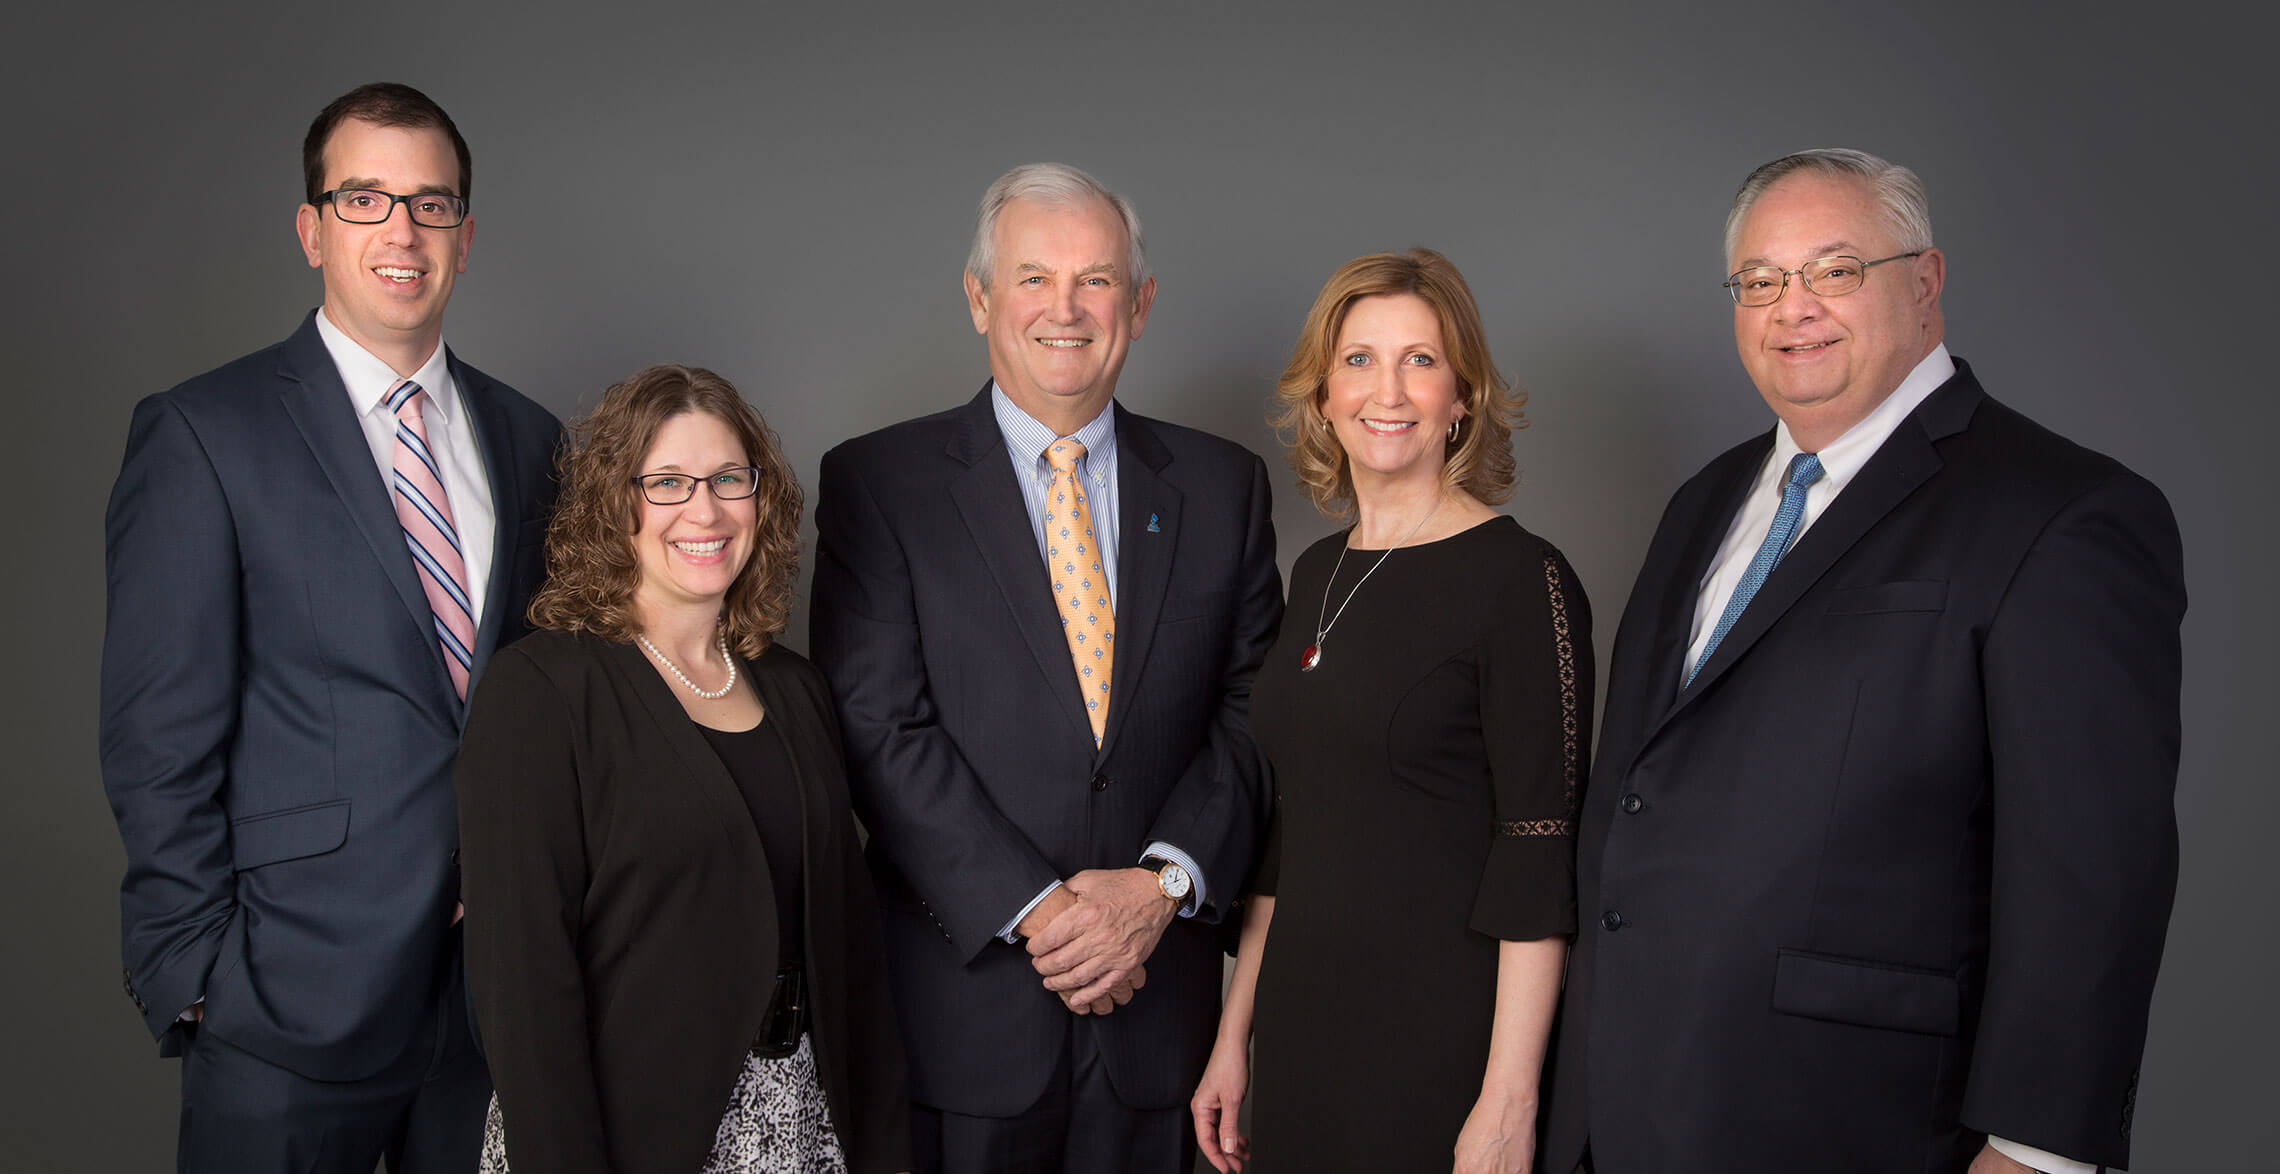 Becker & Lilly Attorneys at Law